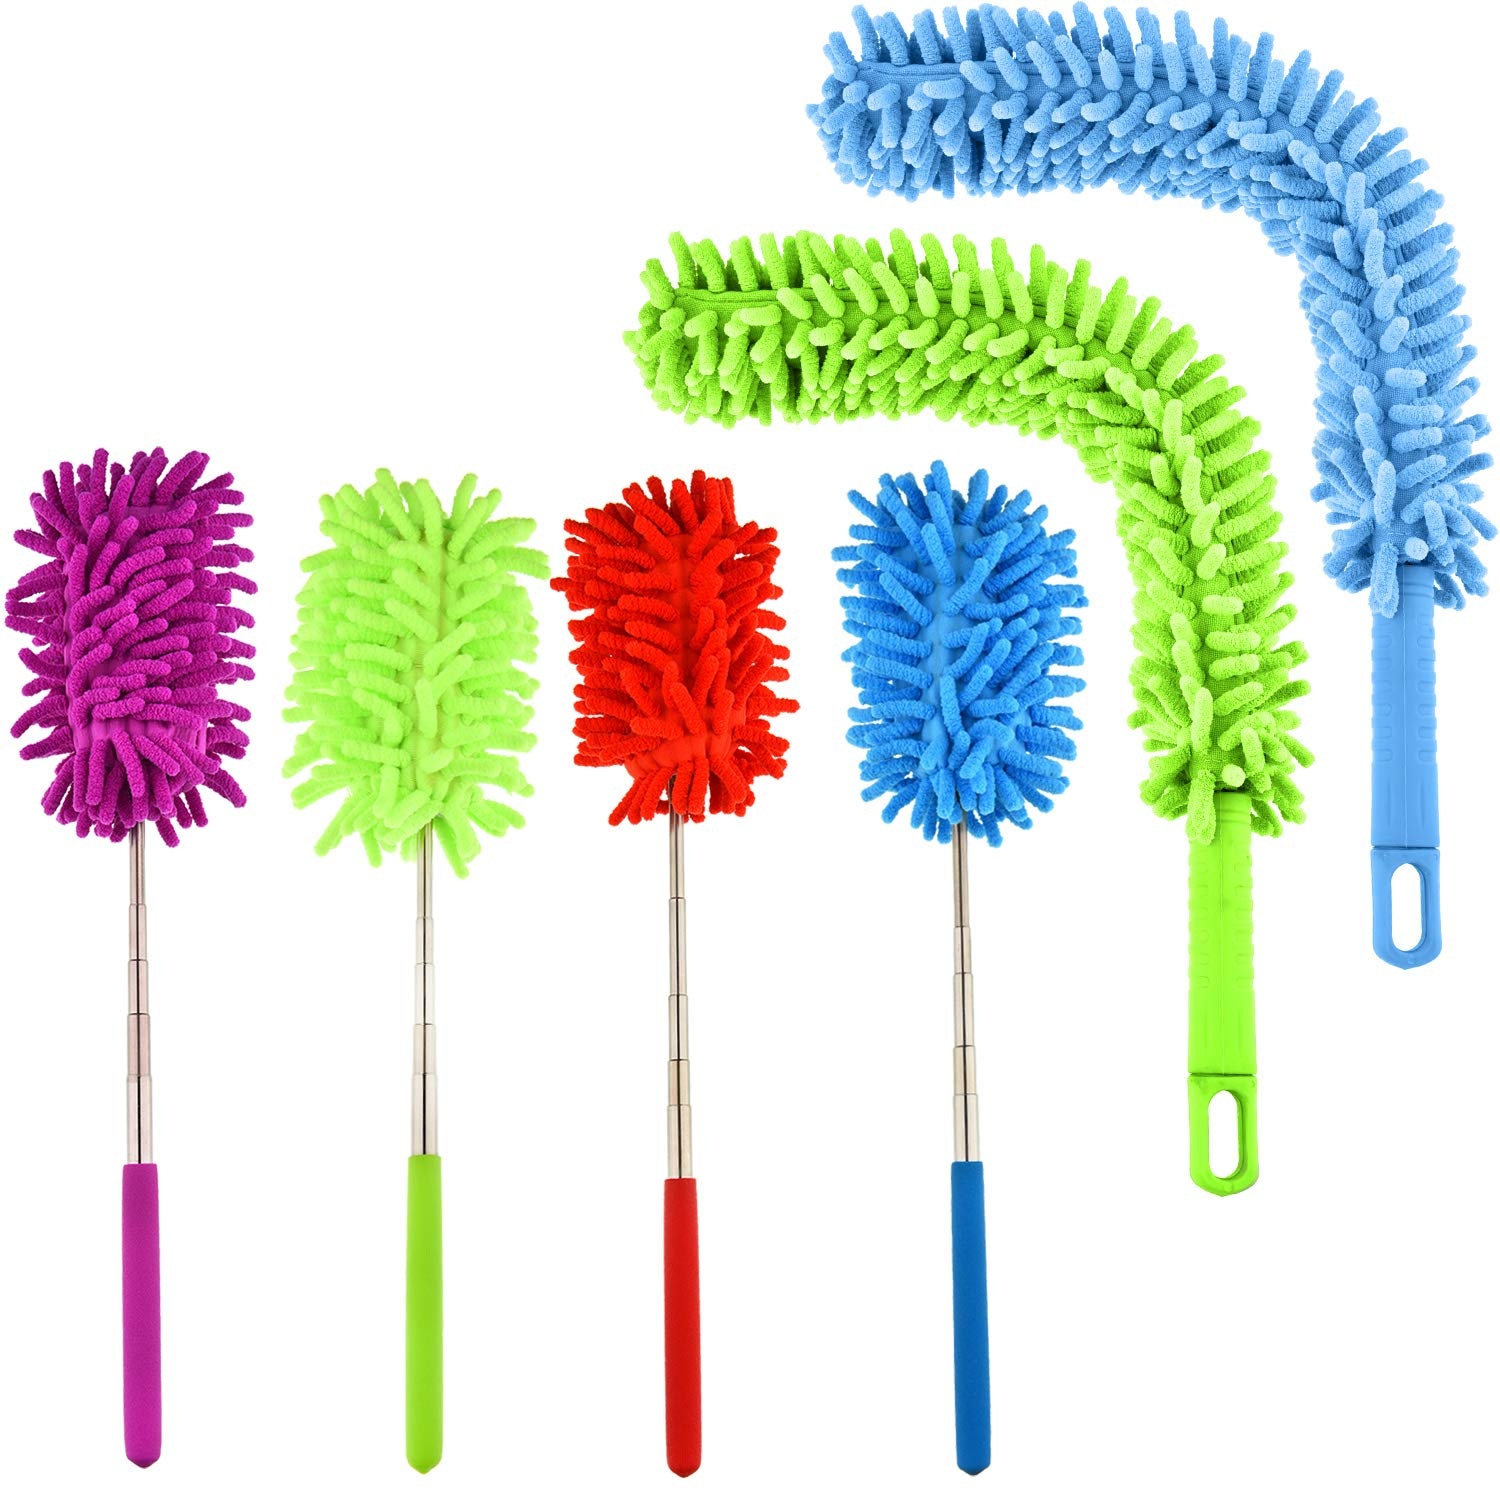 Boao 4 Pieces Extendable Dusting Brush Hand Duster with Telescoping Pole and 2 Pieces Bendable Duster for Ceiling Roof Home Office Car